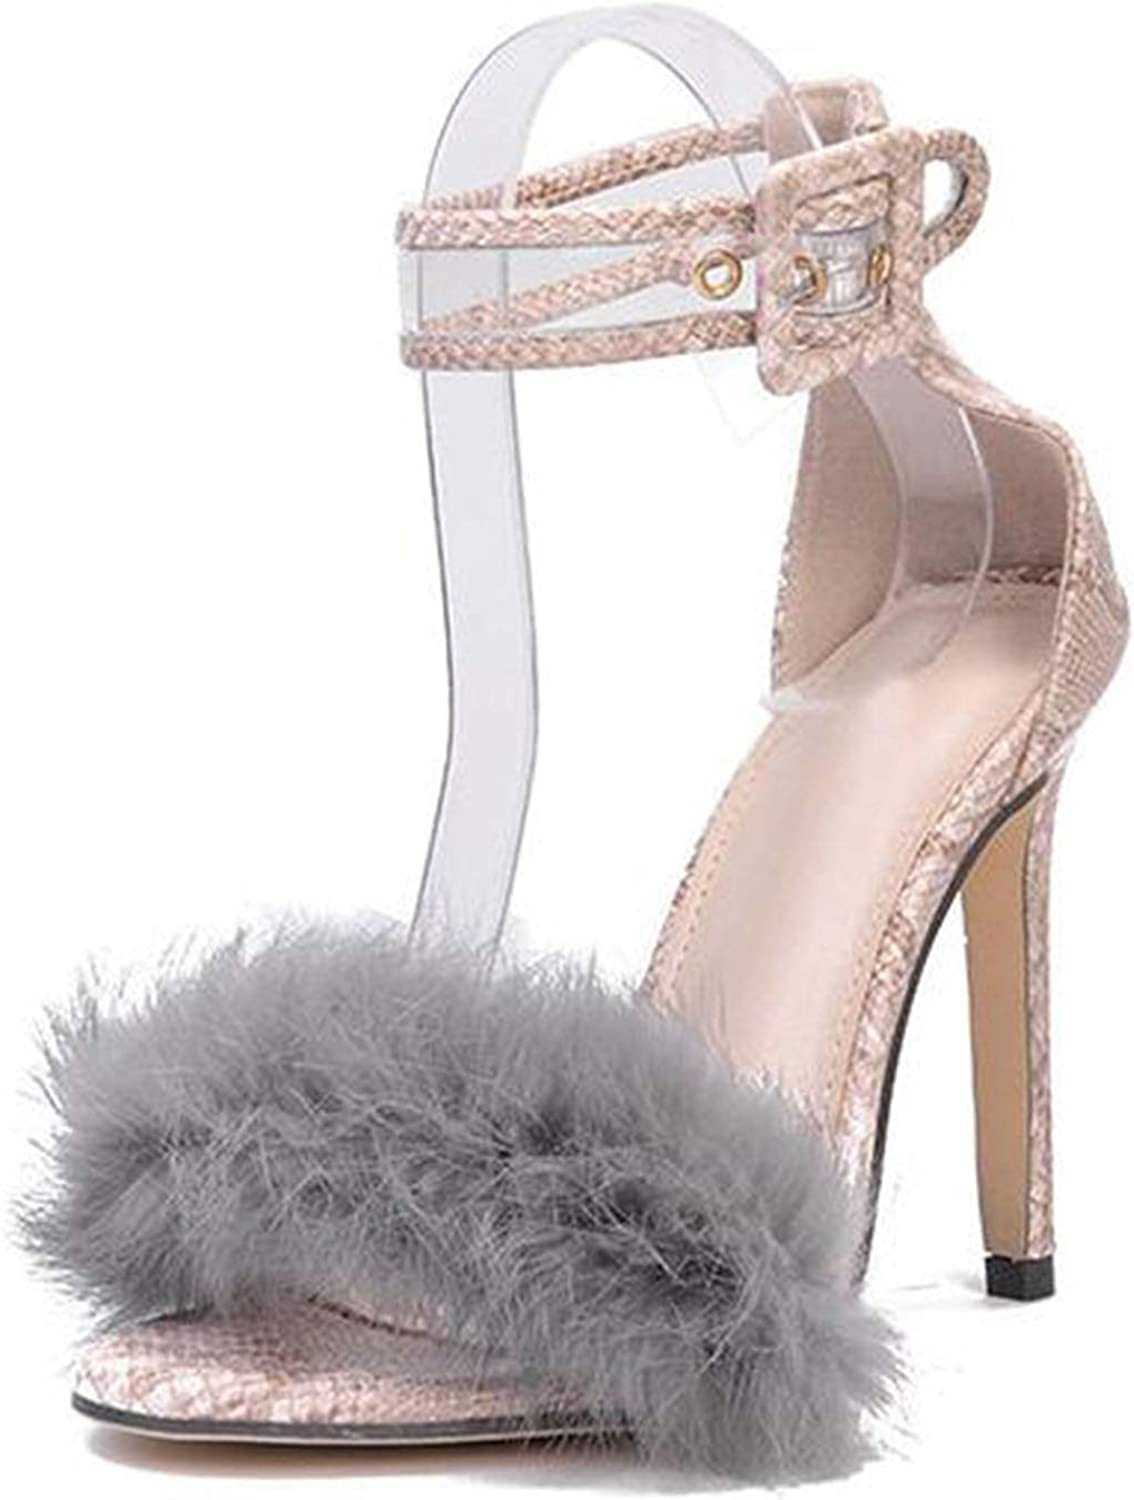 The small cat Women Sandals High Heels Footwear Fur Ankle Strap Gladiator Sandals Female Wedding Sexy shoes